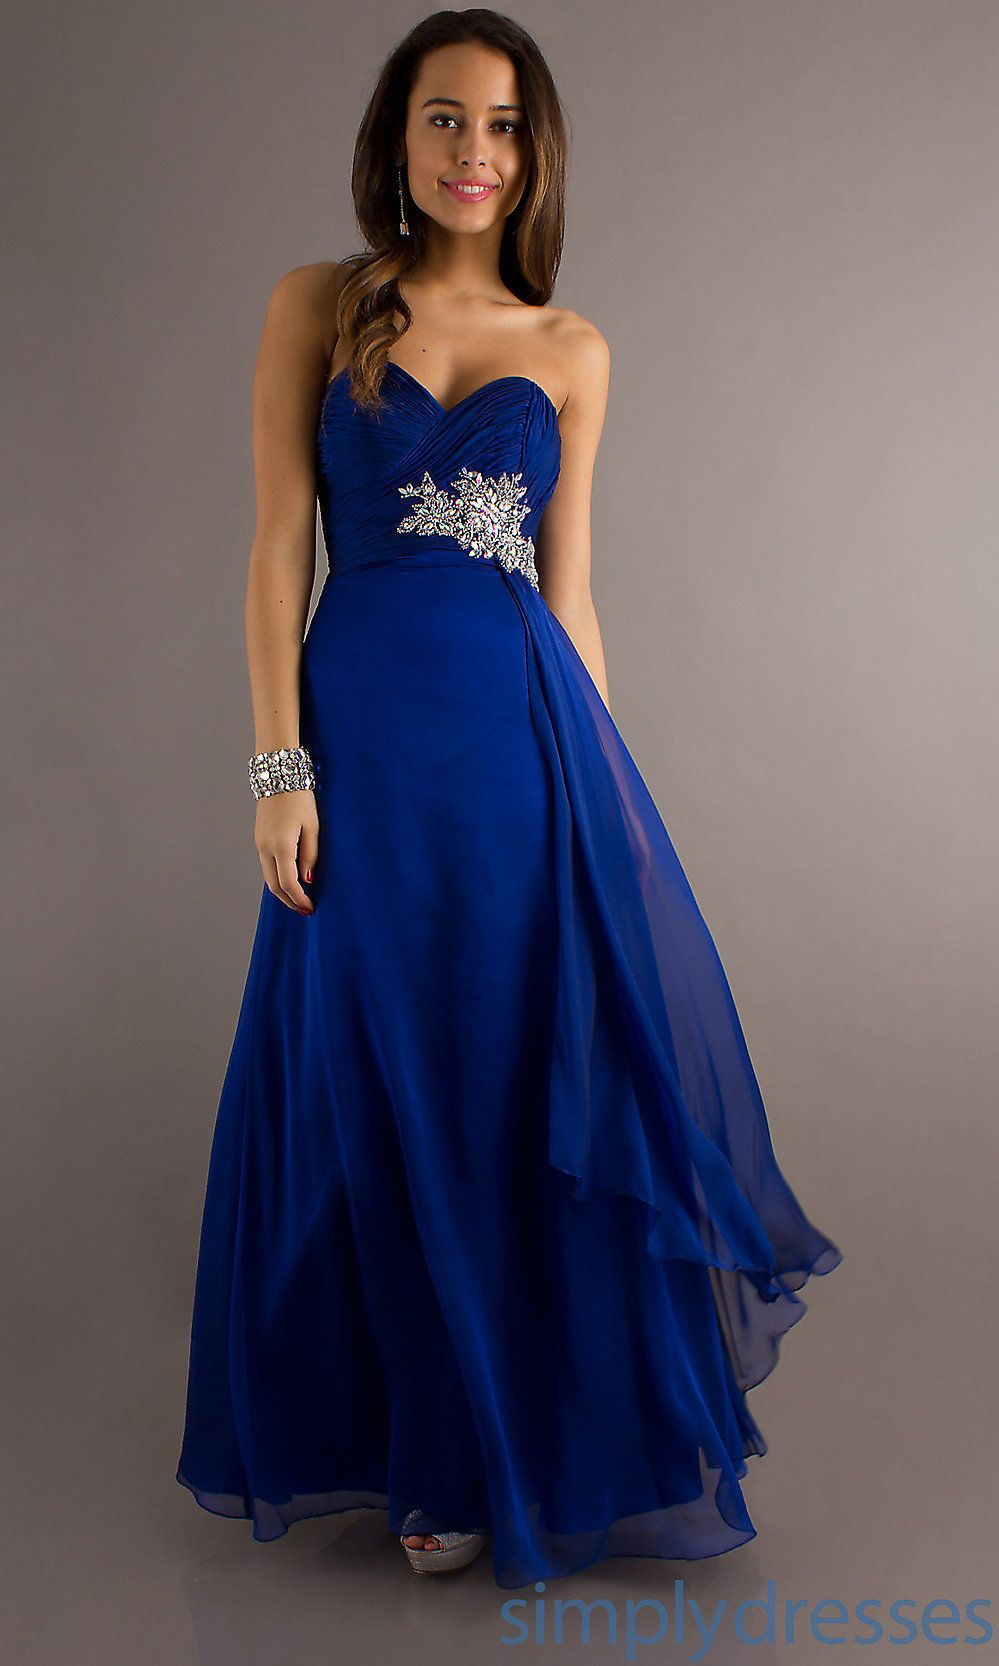 Bridesmaid Dresses Royal Blue And